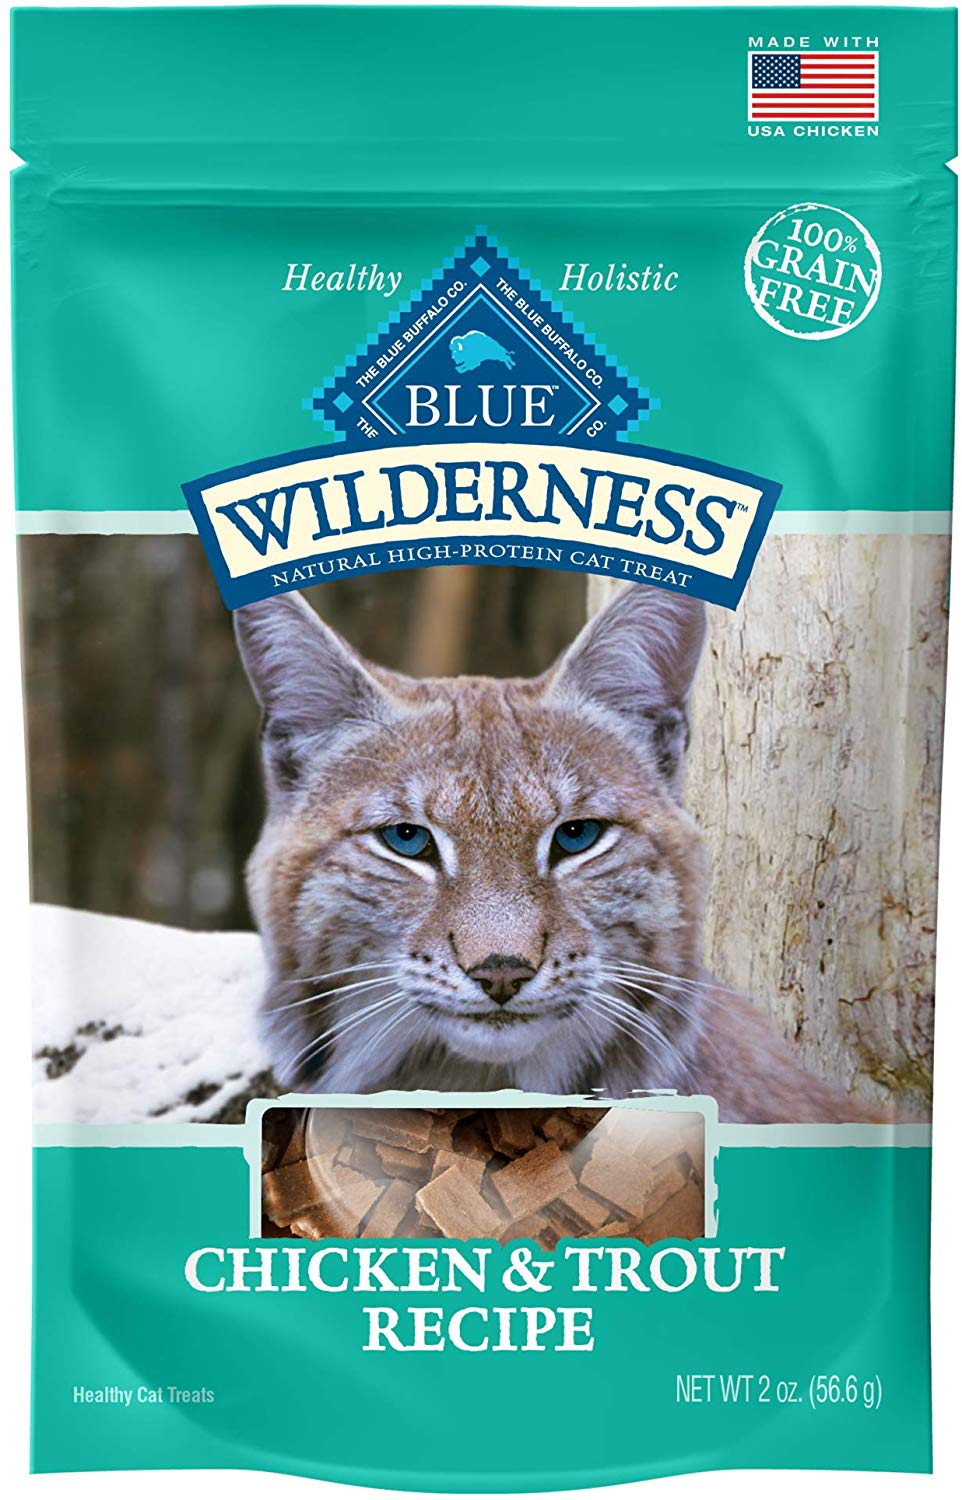 Wilderness Grain-Free Chicken & Trout Treats